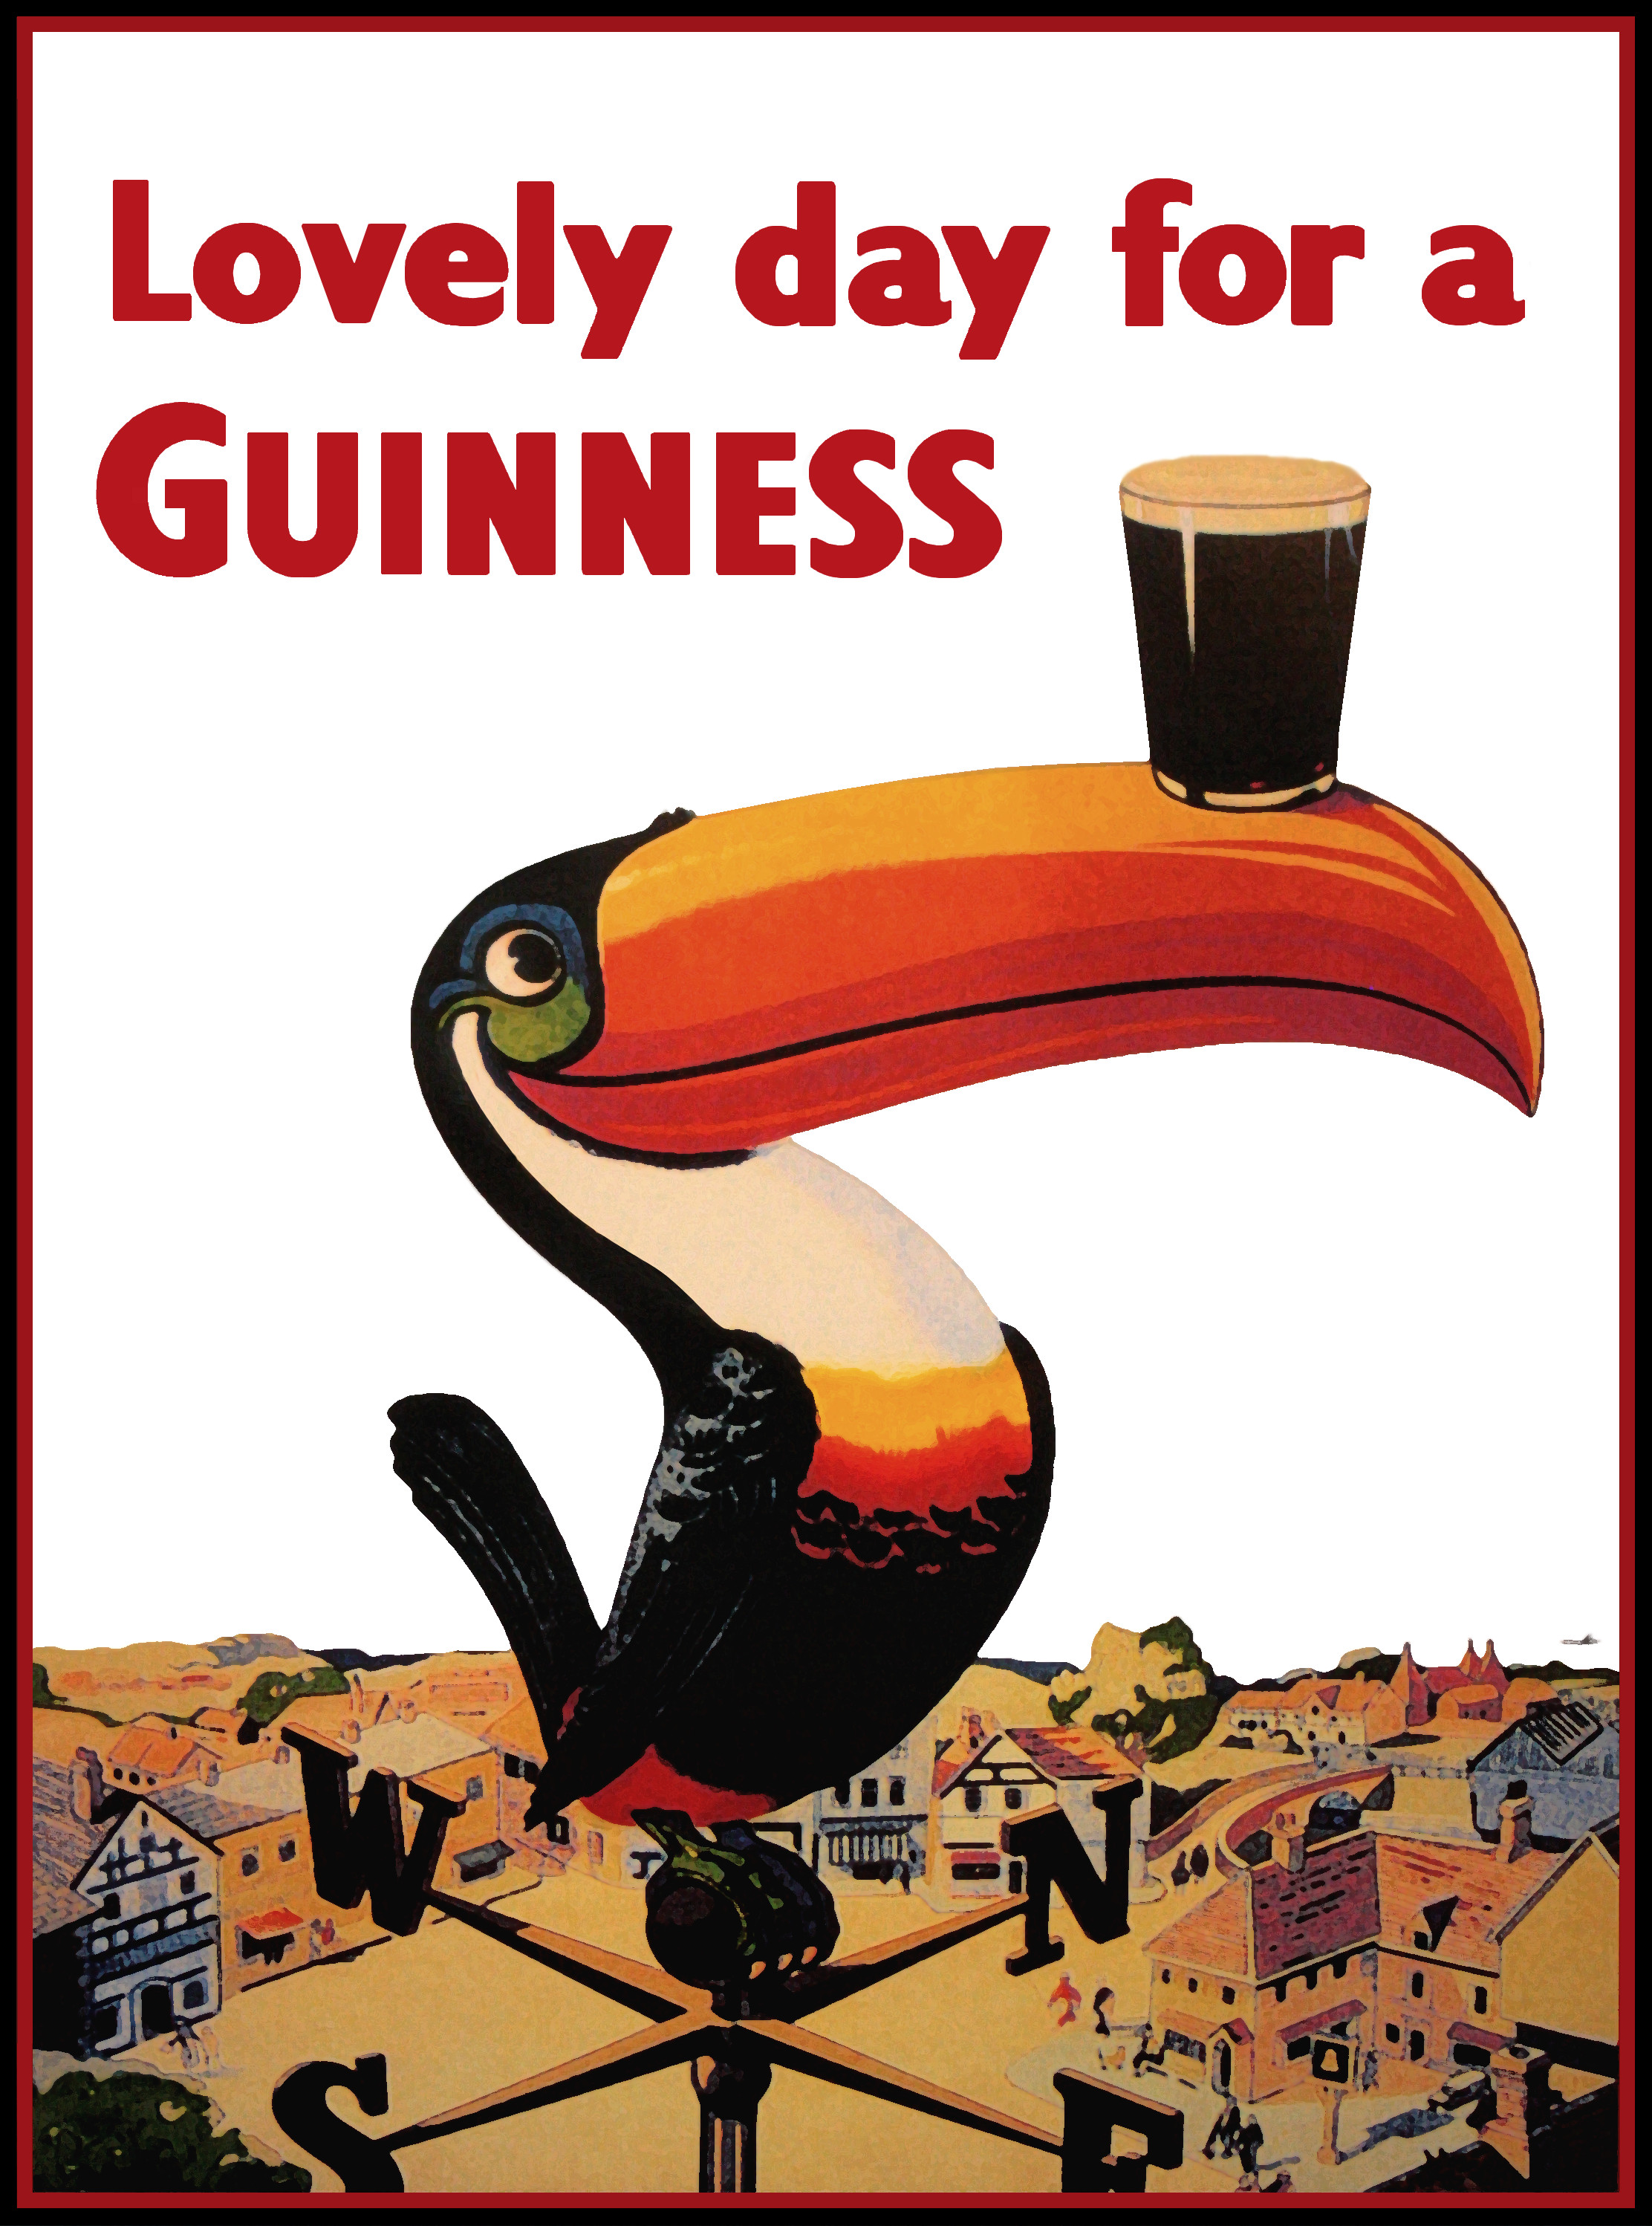 lovely_day_for_a_guinness_by_blackers33-